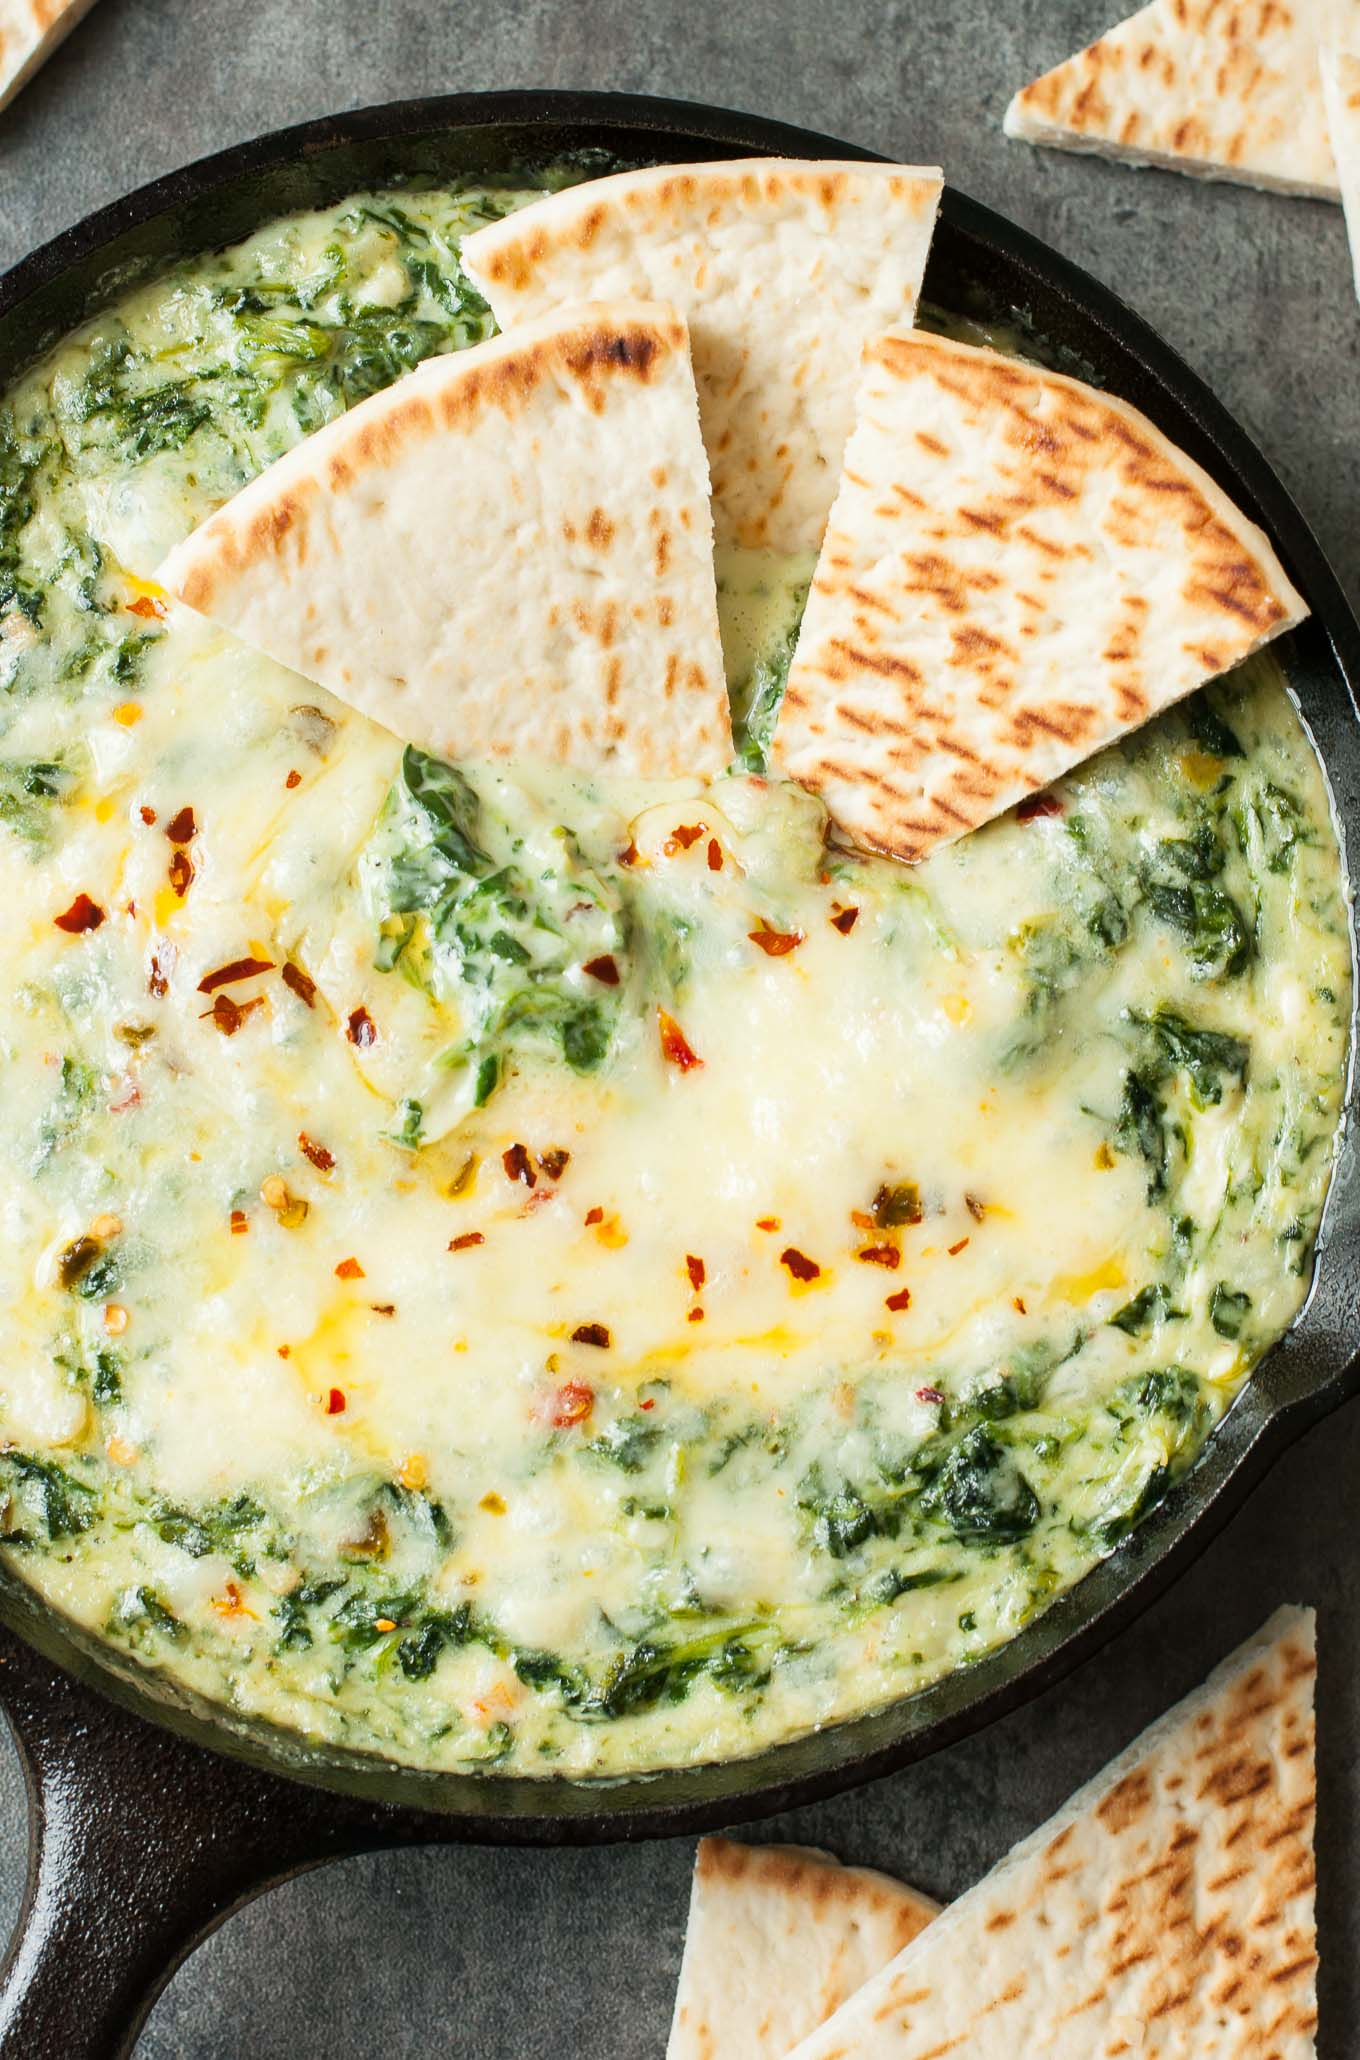 Serve this Cheesy Baked Shrimp and Spinach Dip at your next party and it's sure to be the first dish devoured! My friends and family BEG for me to make it!